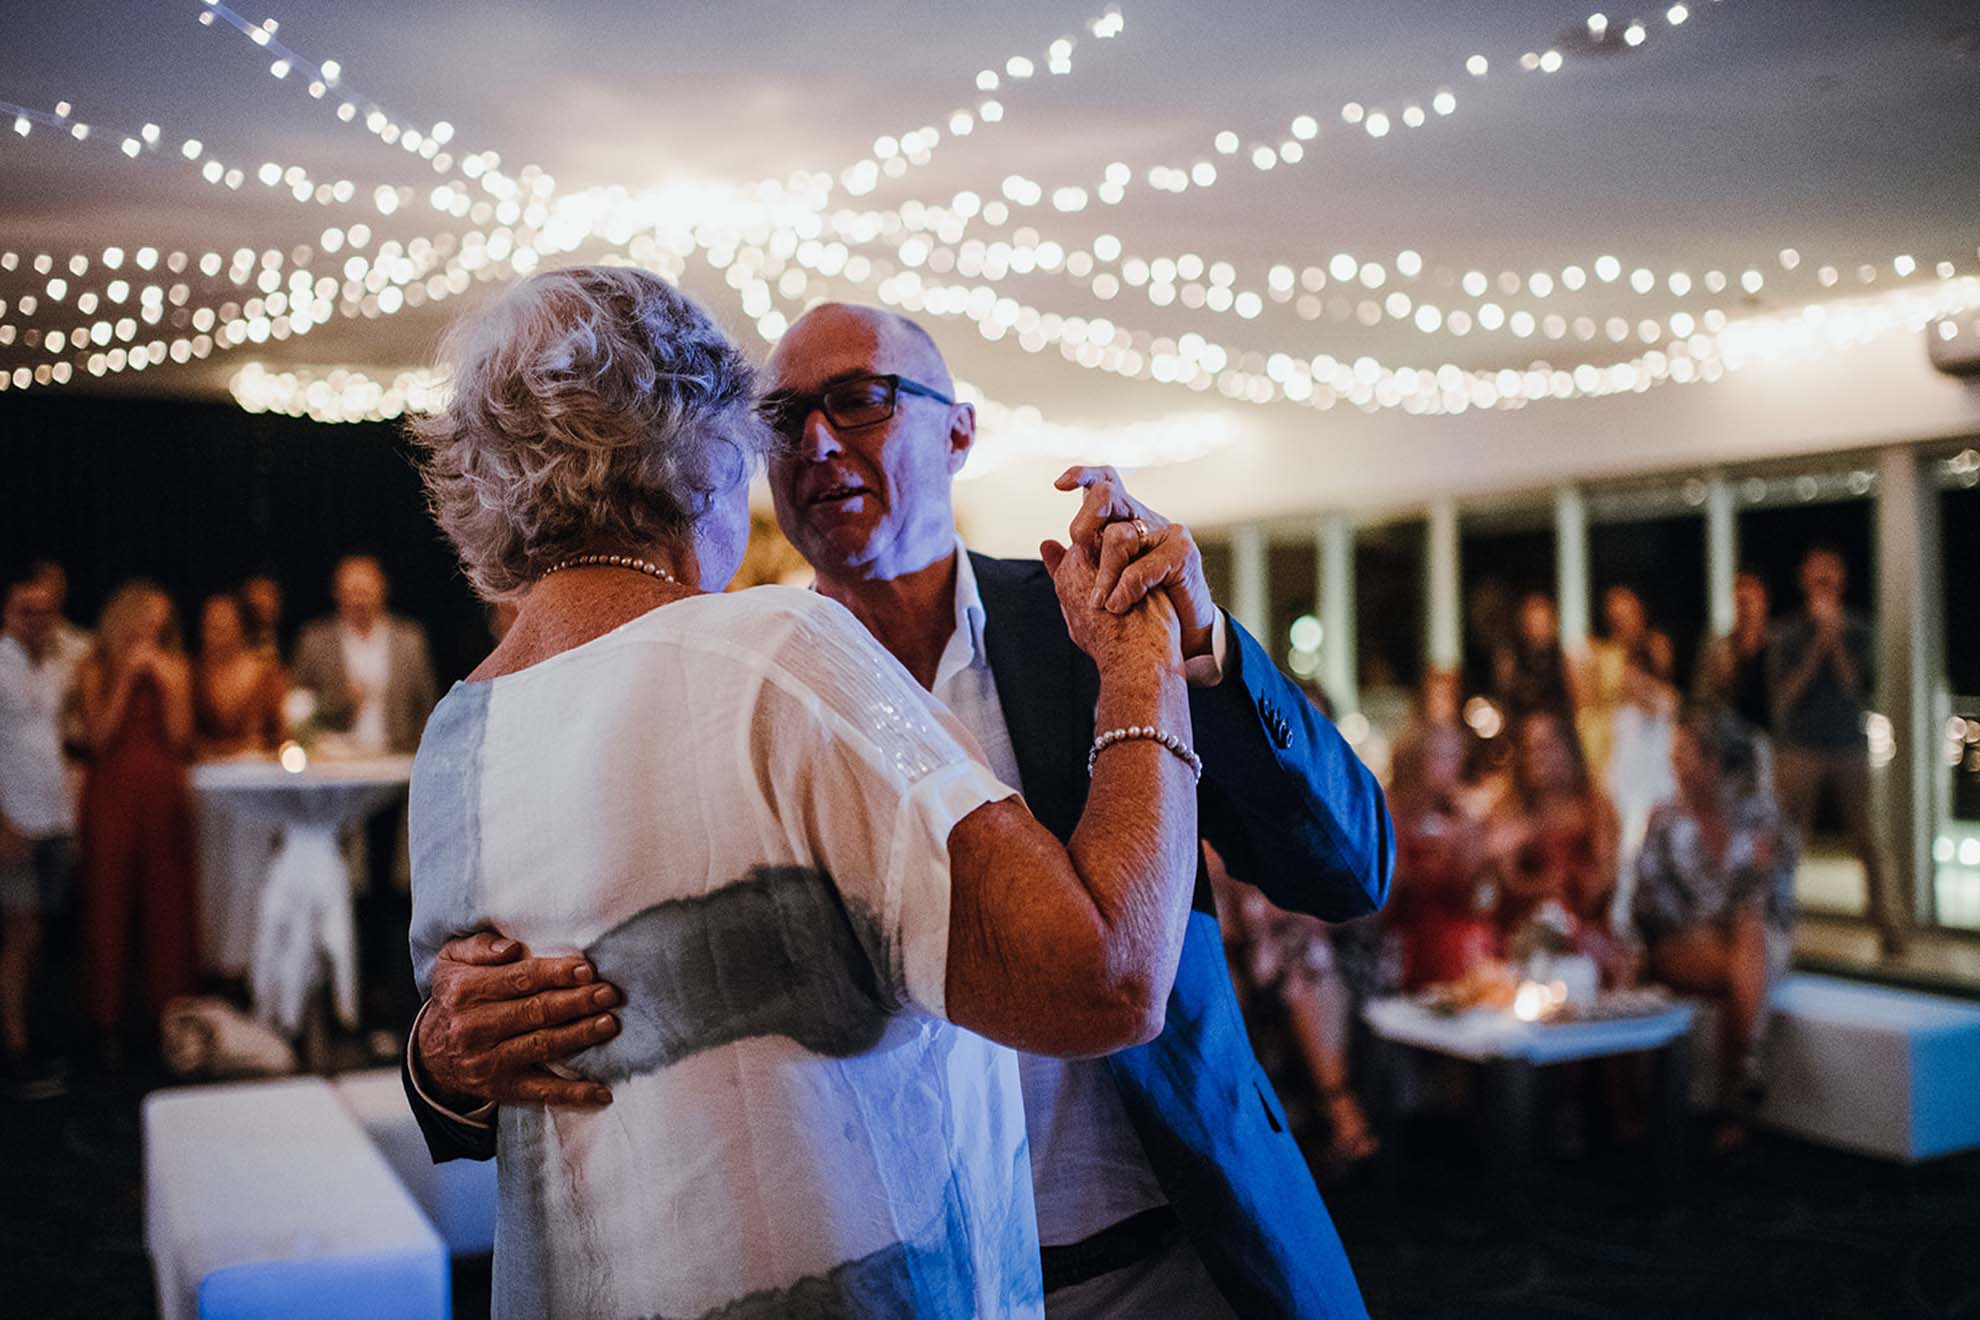 Morgan Roberts photography lesbian gay same-sex beach wedding marriage gold coast elopement Dancing With Her Celebrant Lady Love Vendor